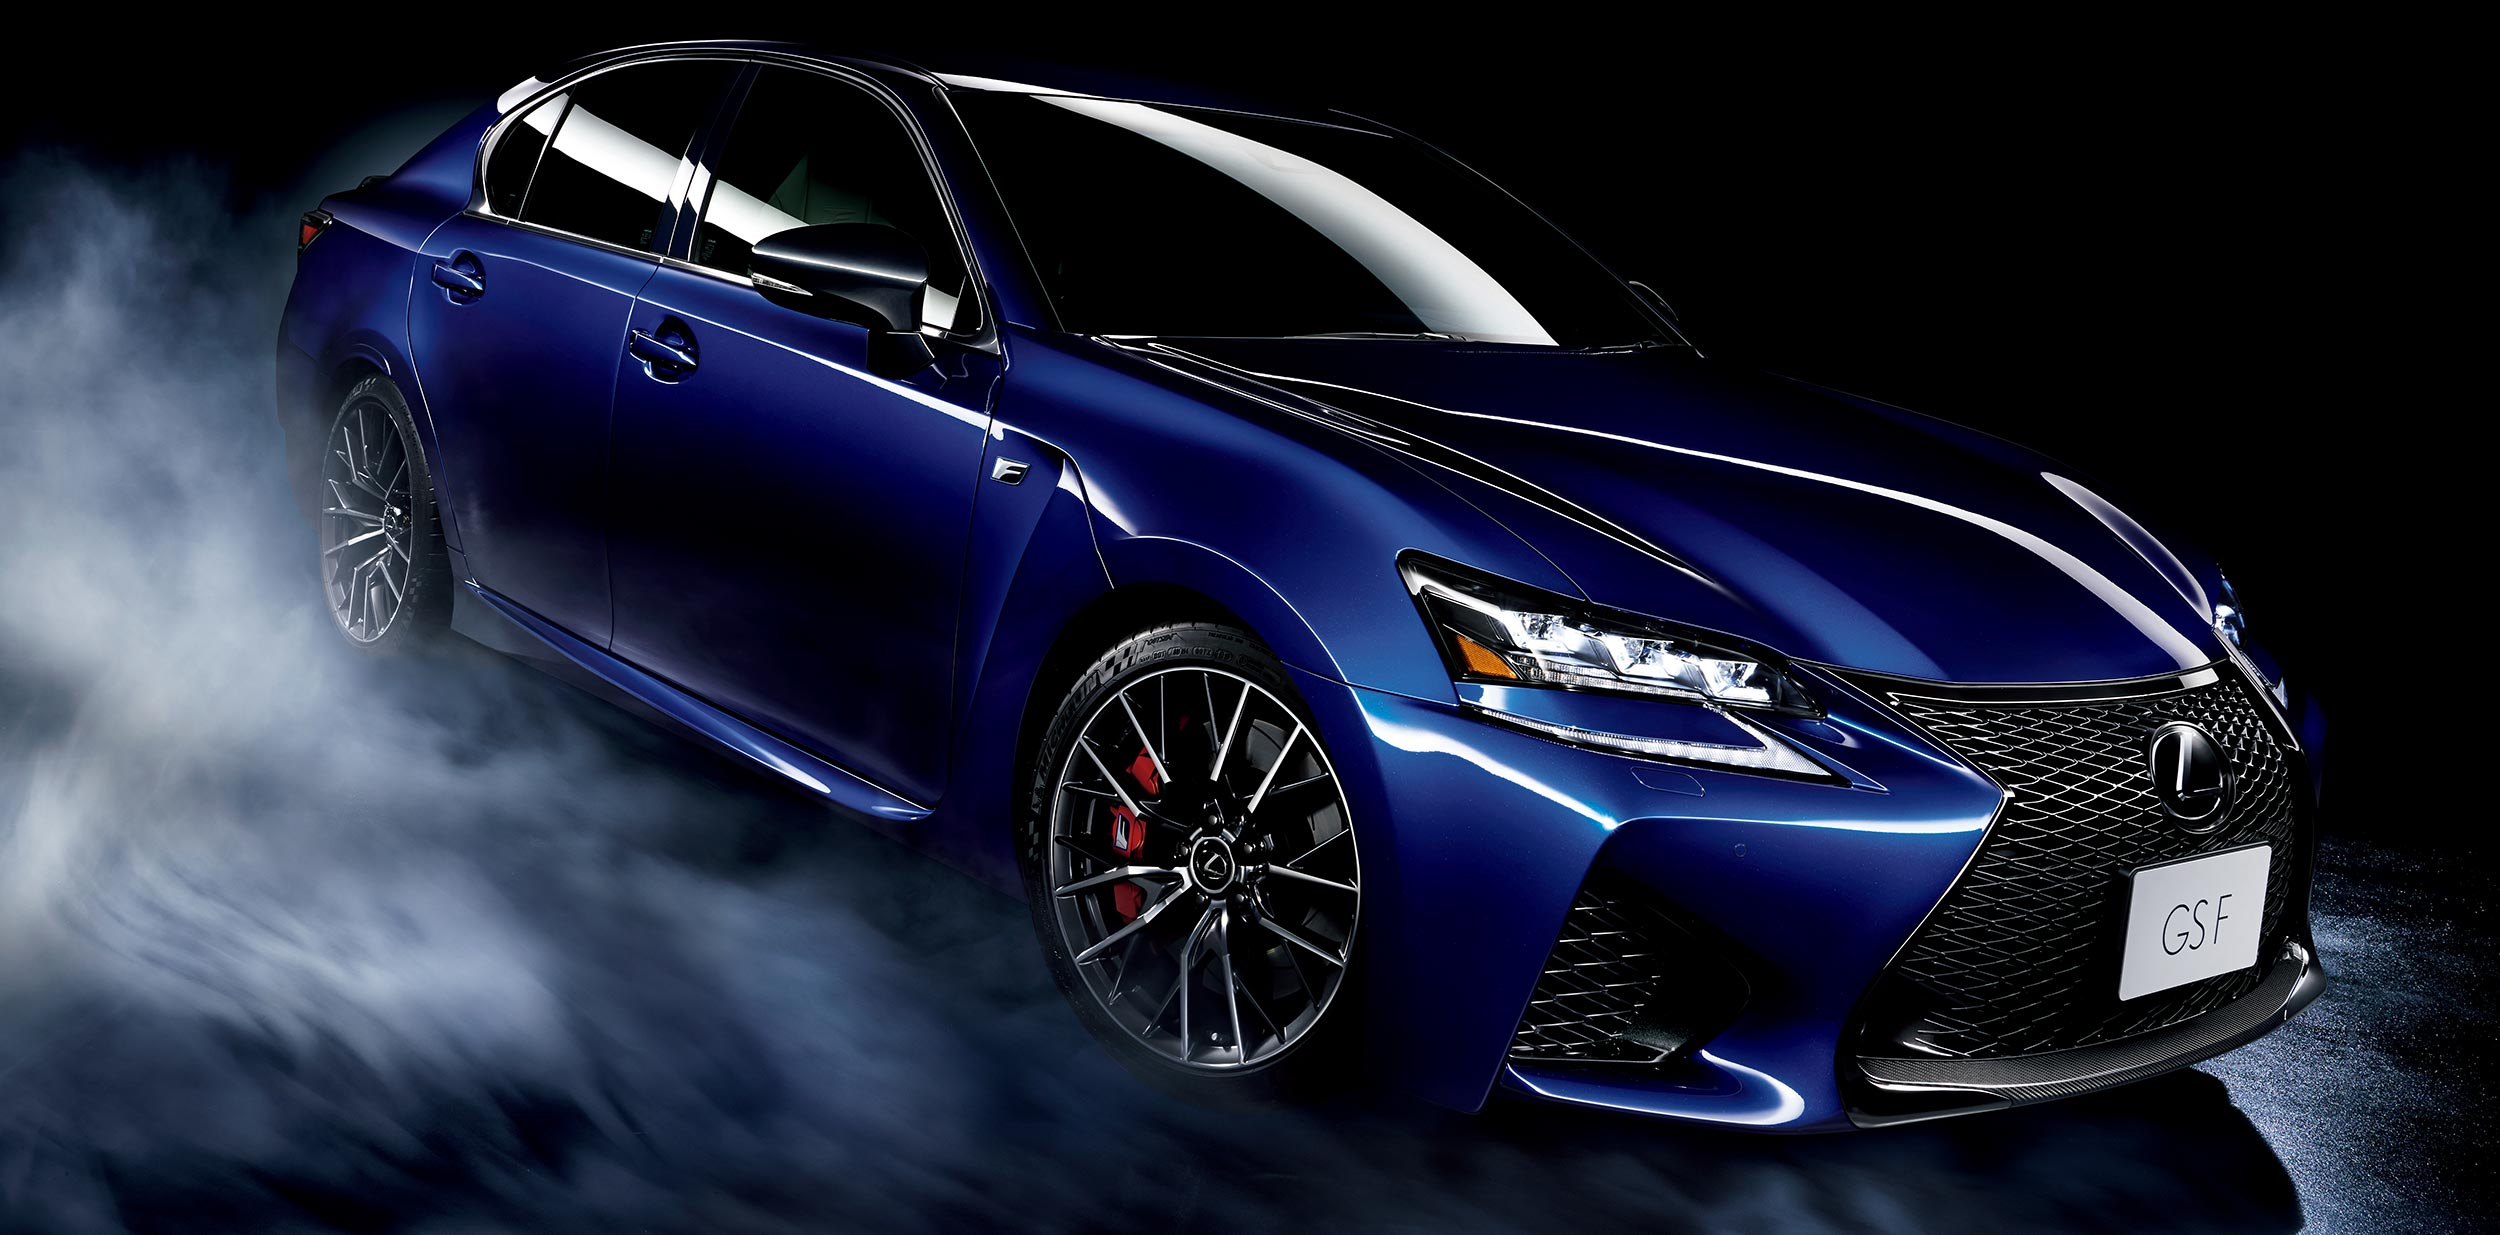 2020 Lexus GS F Review and Release date